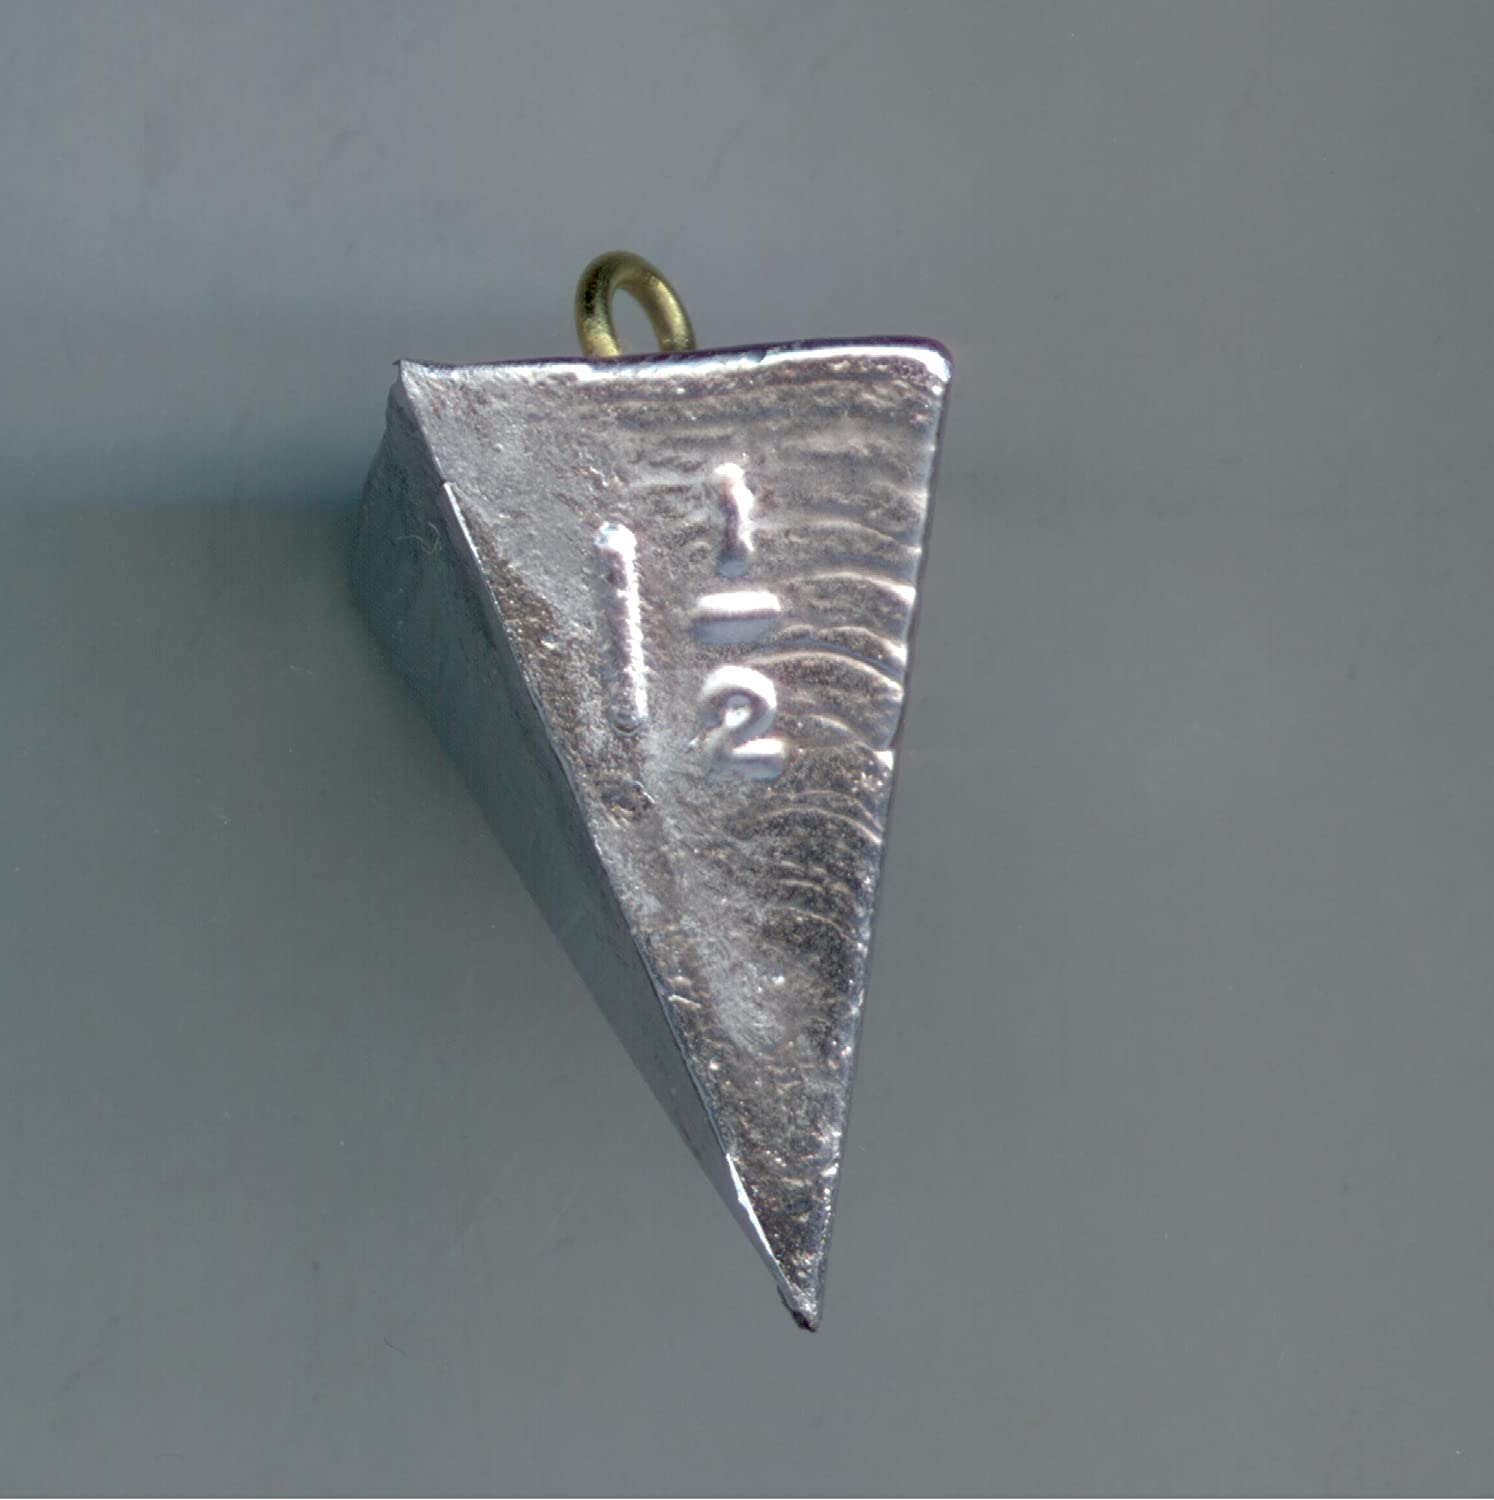 4 oz Pyramid Fishing Sinker// Weight 1 pack of 3 sinkers.